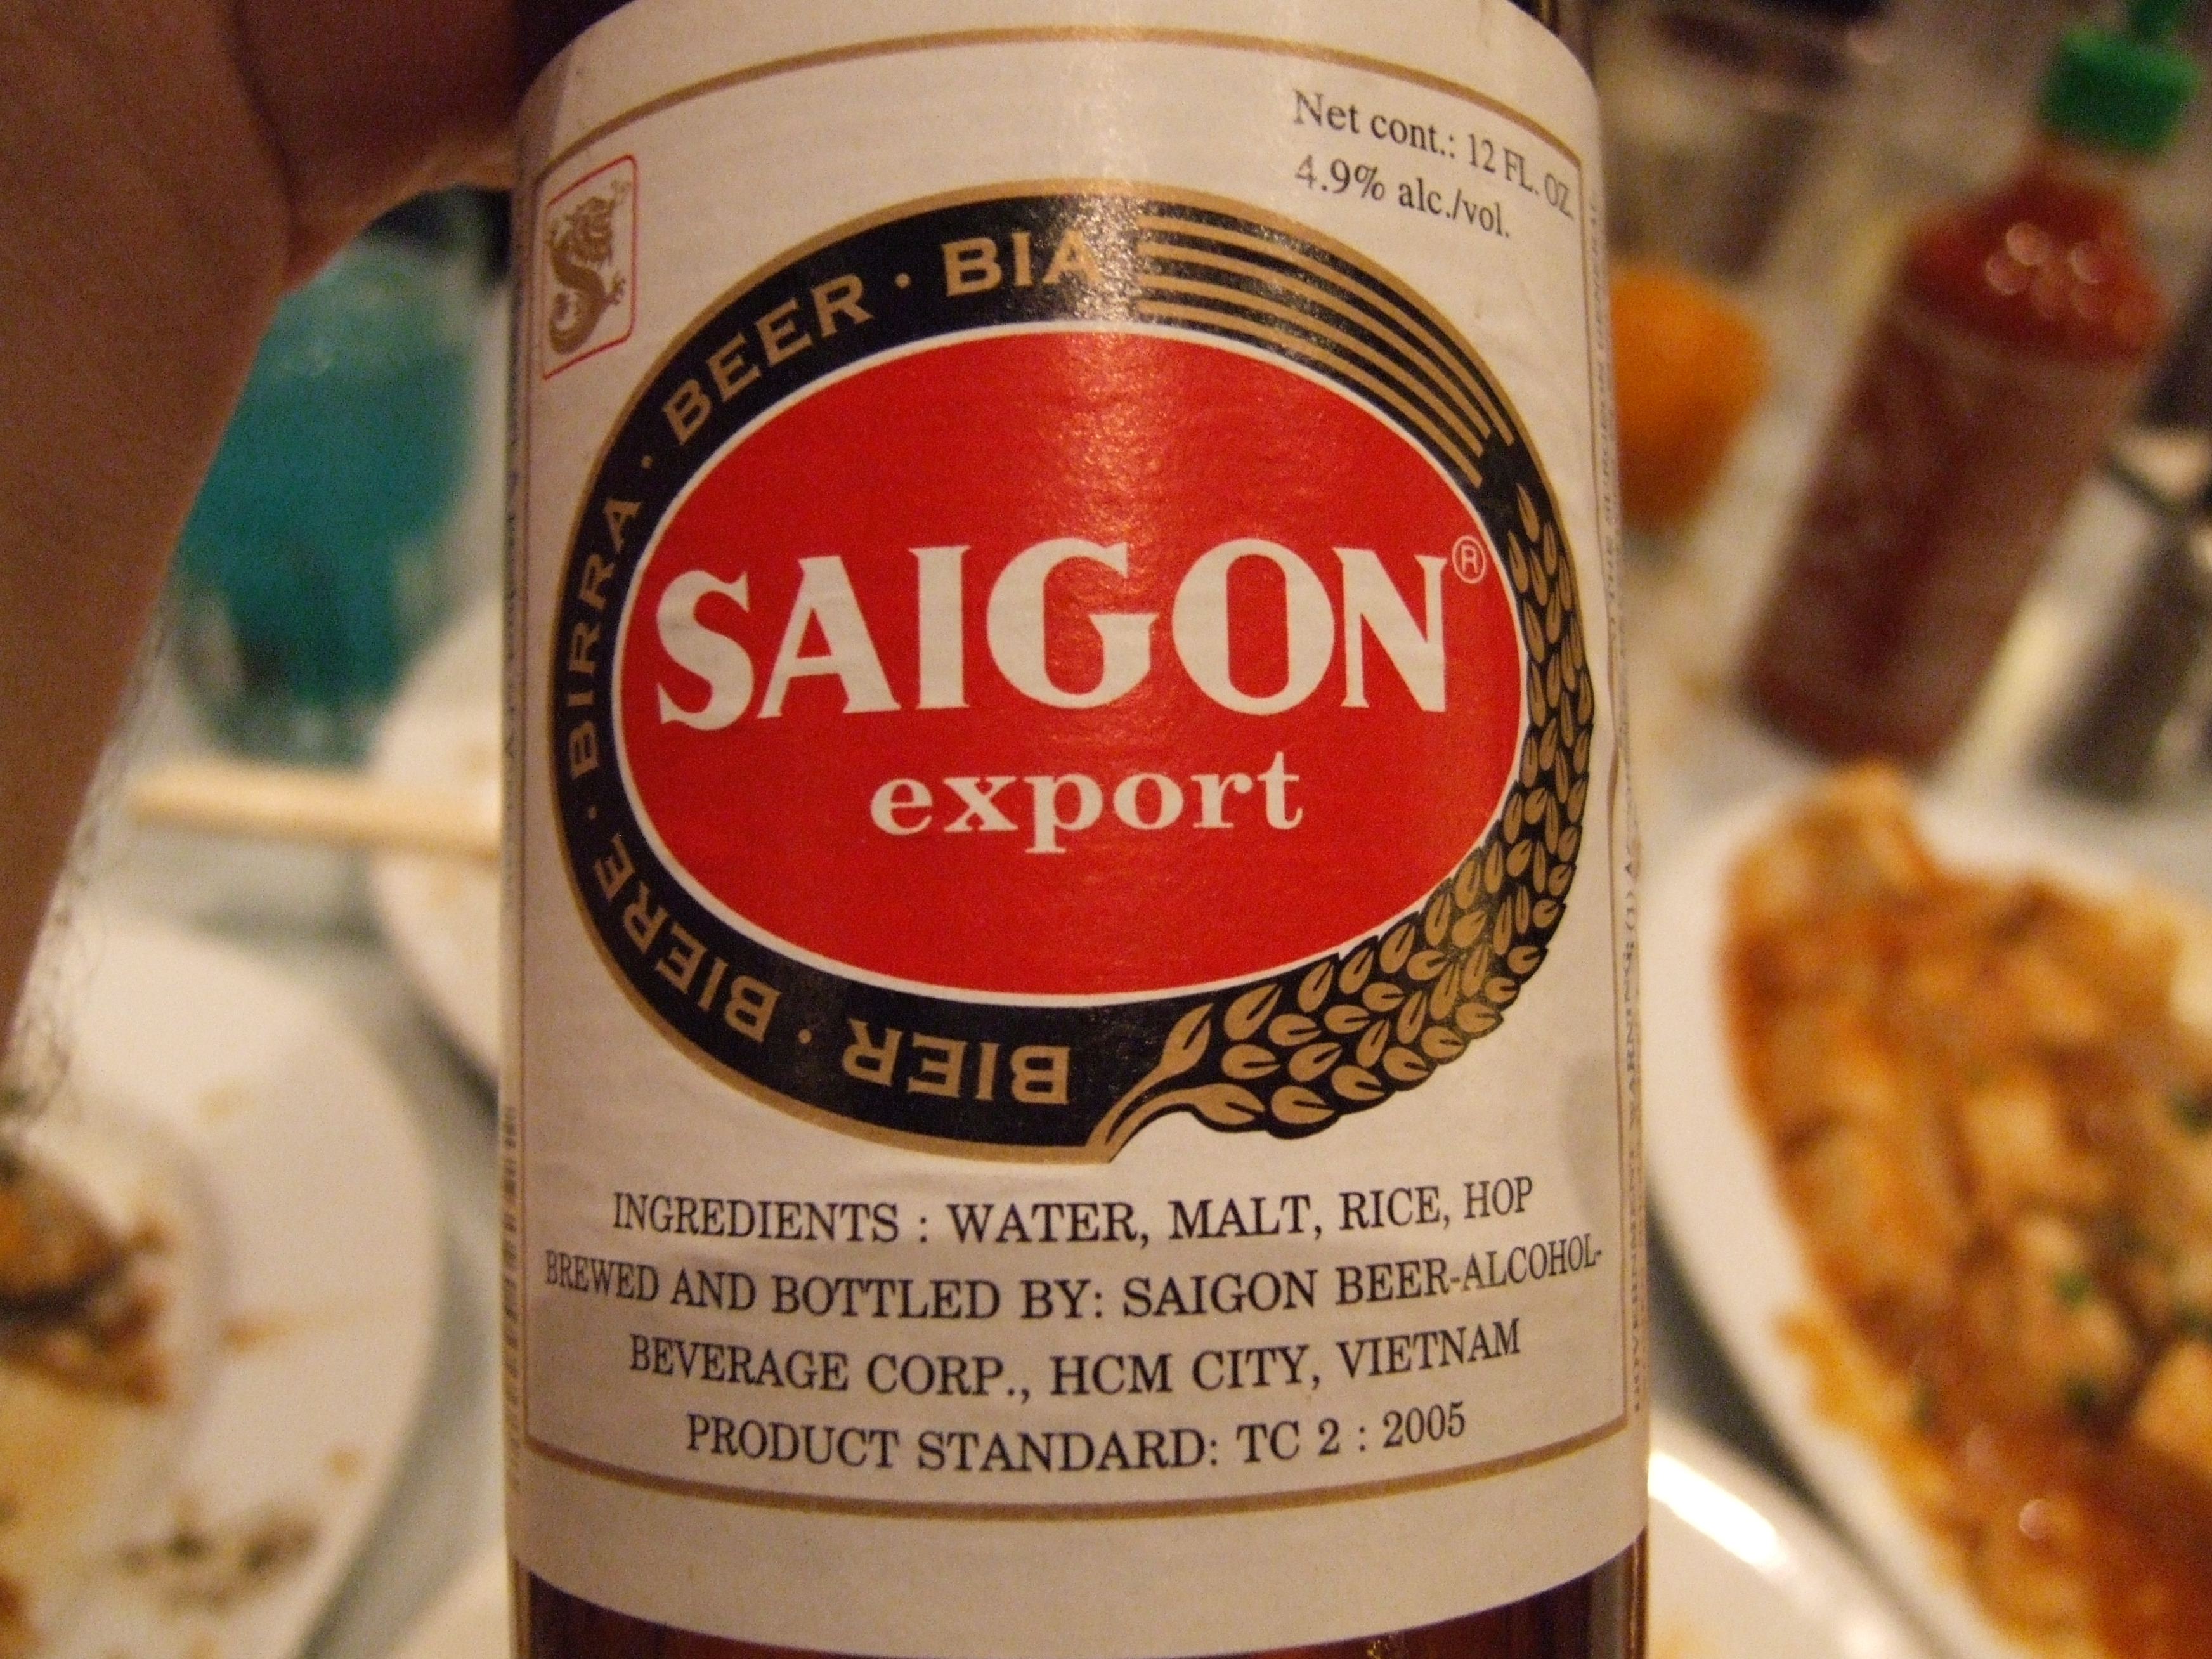 File:Saigon lager beer red label.jpg - Wikimedia Commons